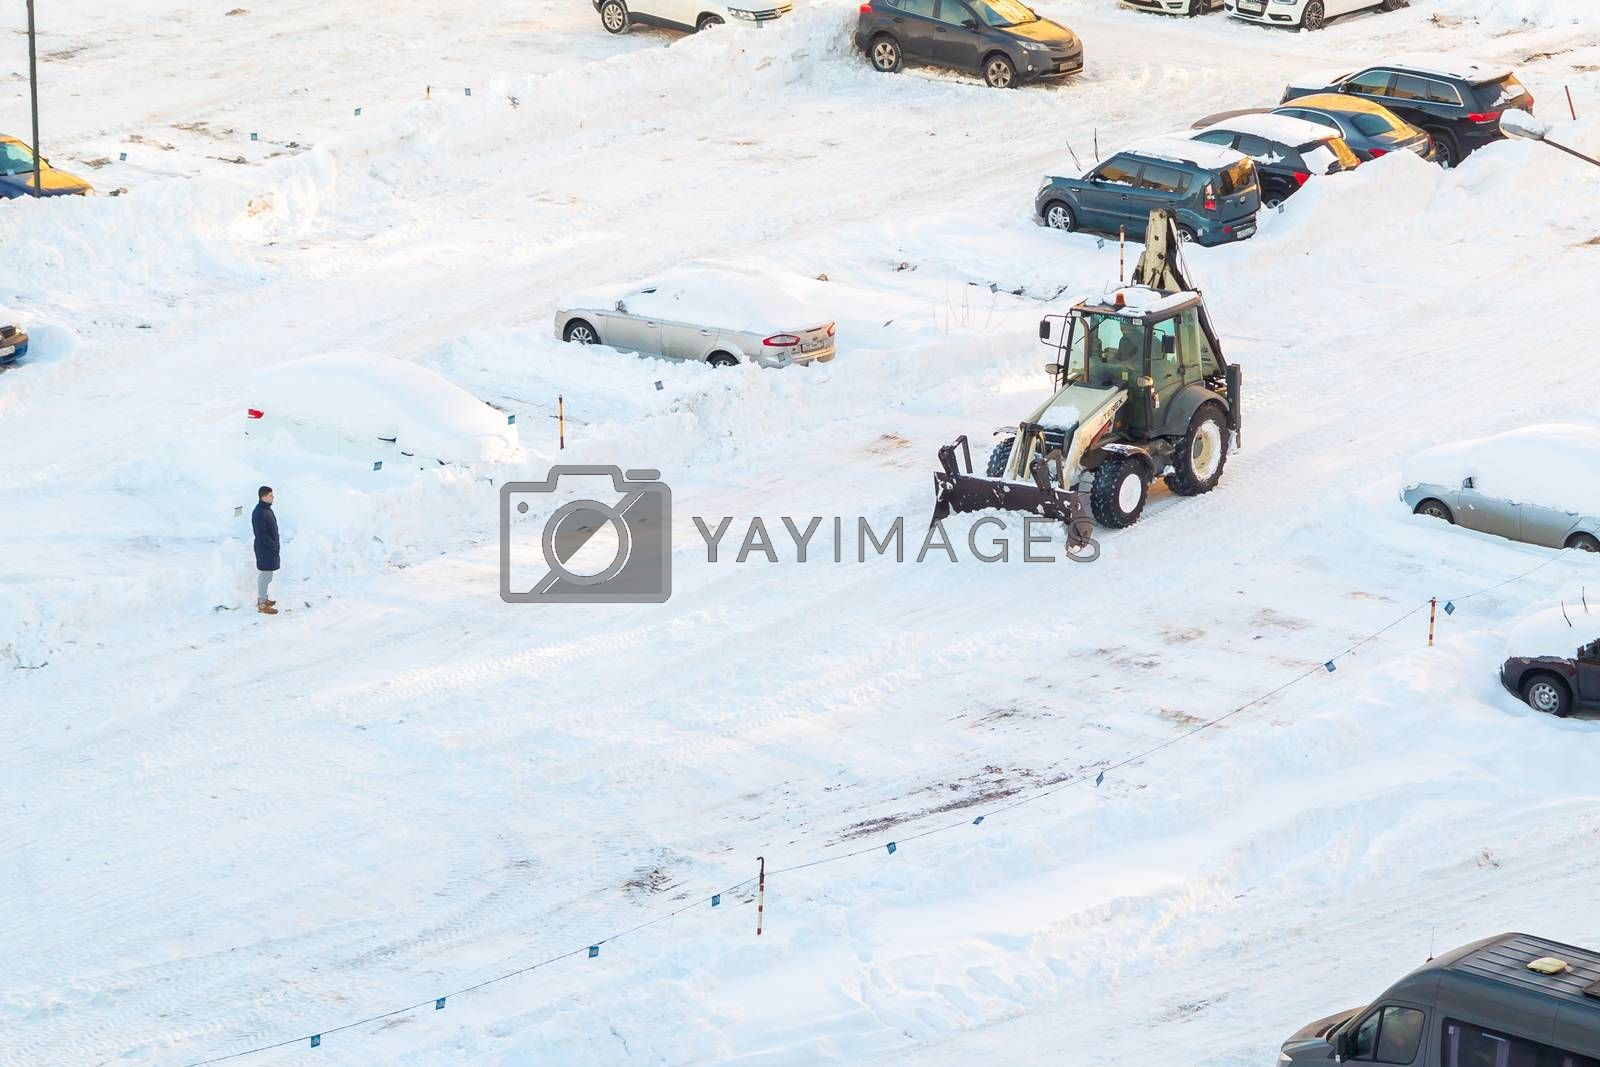 Tractor removes snow in the parking lot after a snowfall by galsand